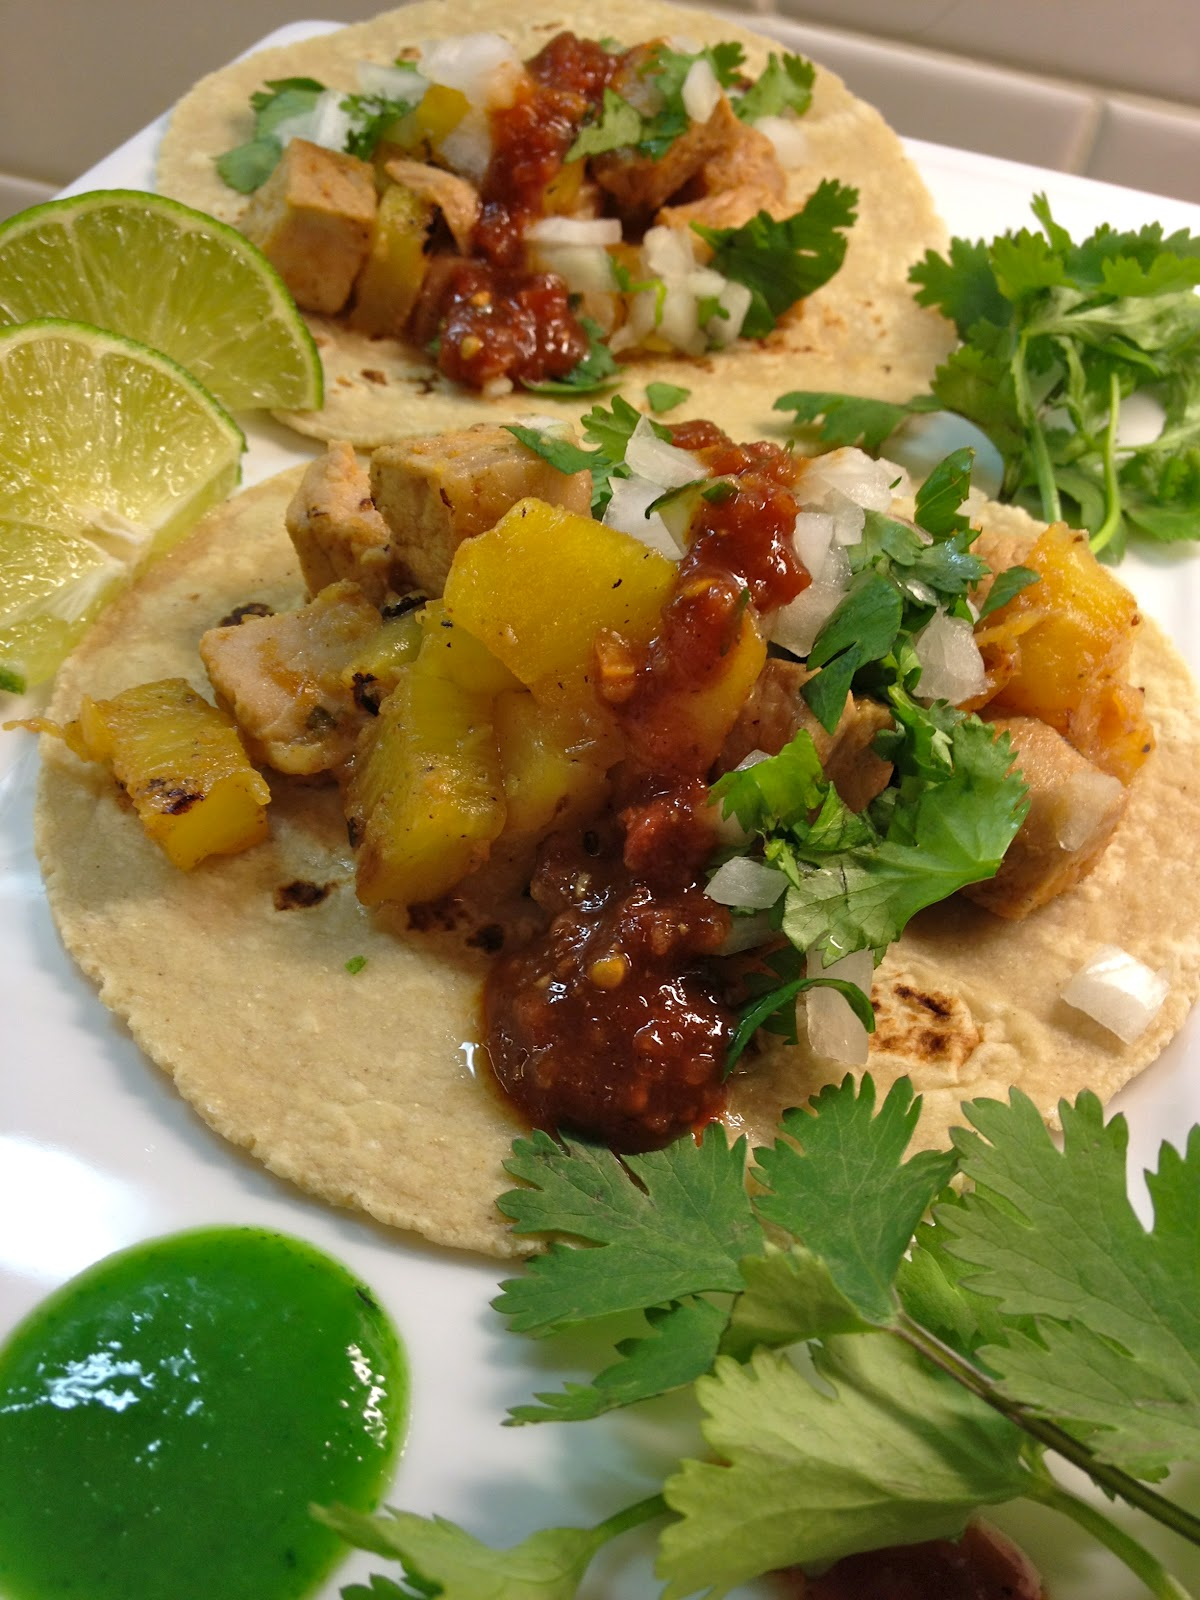 Tacos Al Pastor - King of the Tacos, Photo: NK